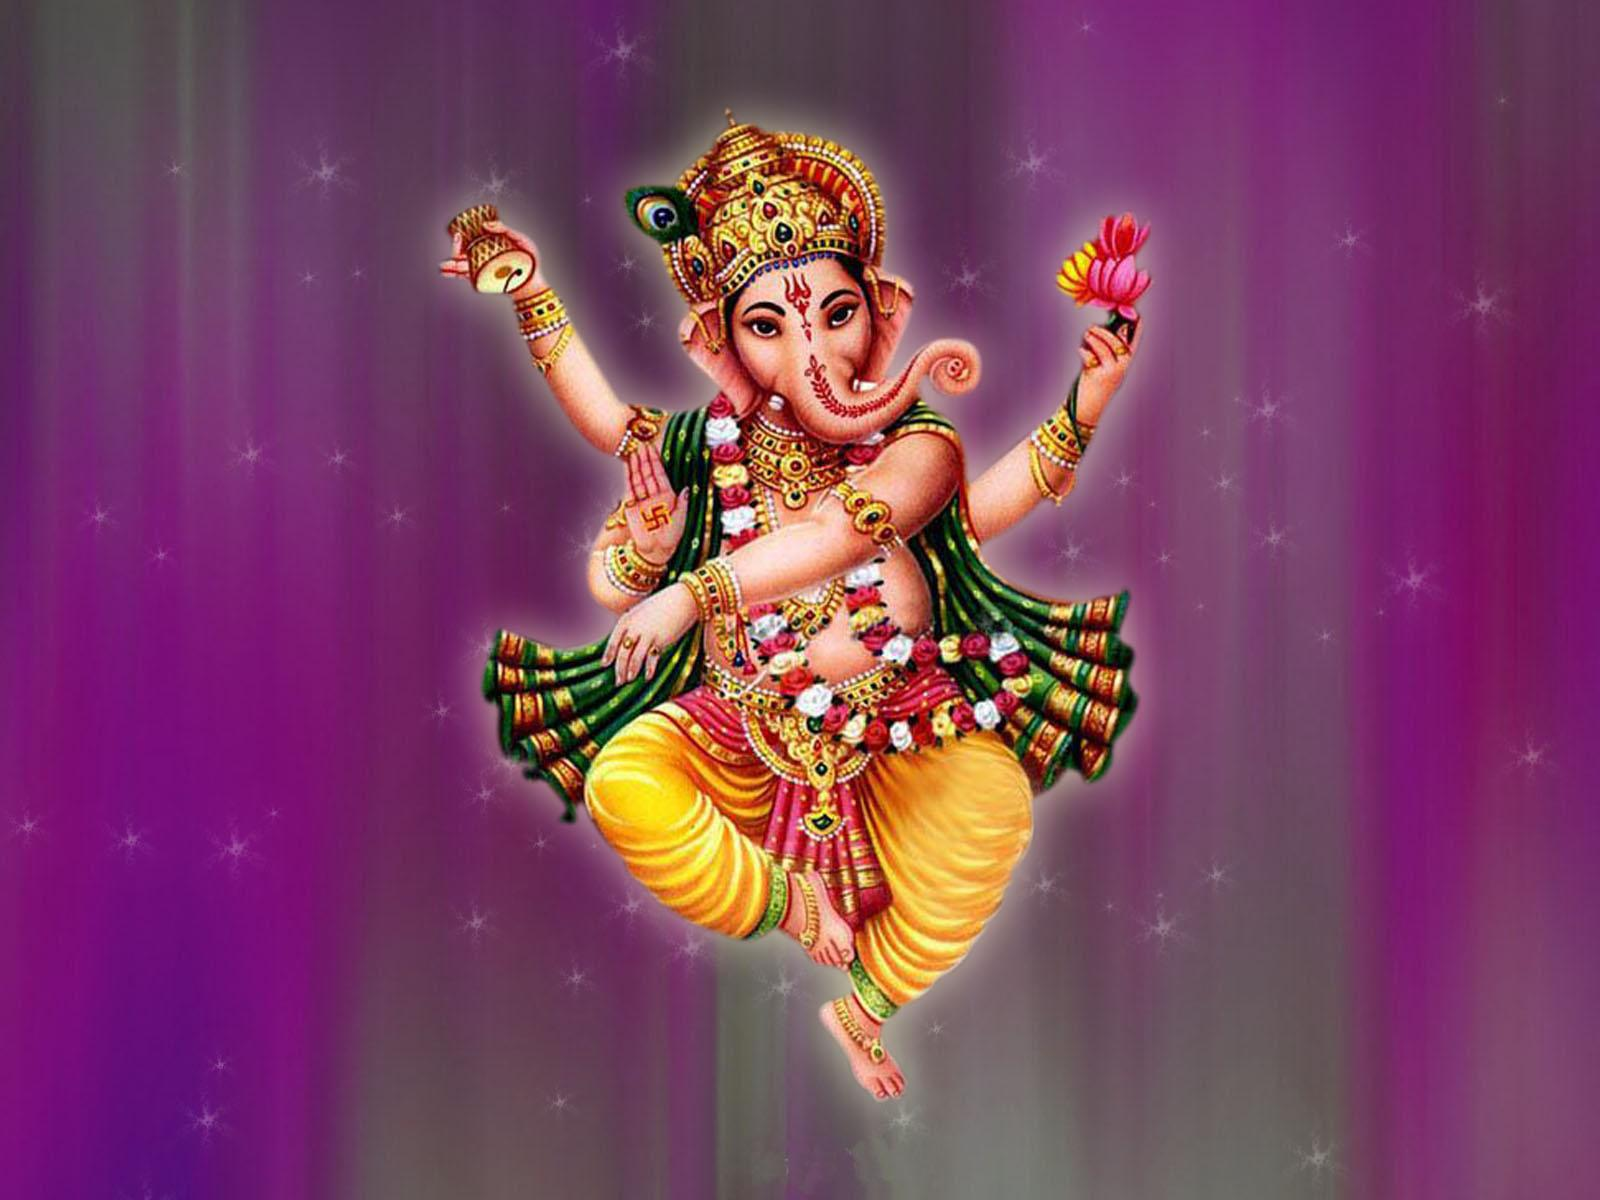 Shree Ganesh Hd Images: Ganesh Chaturthi HD Wallpapers Free